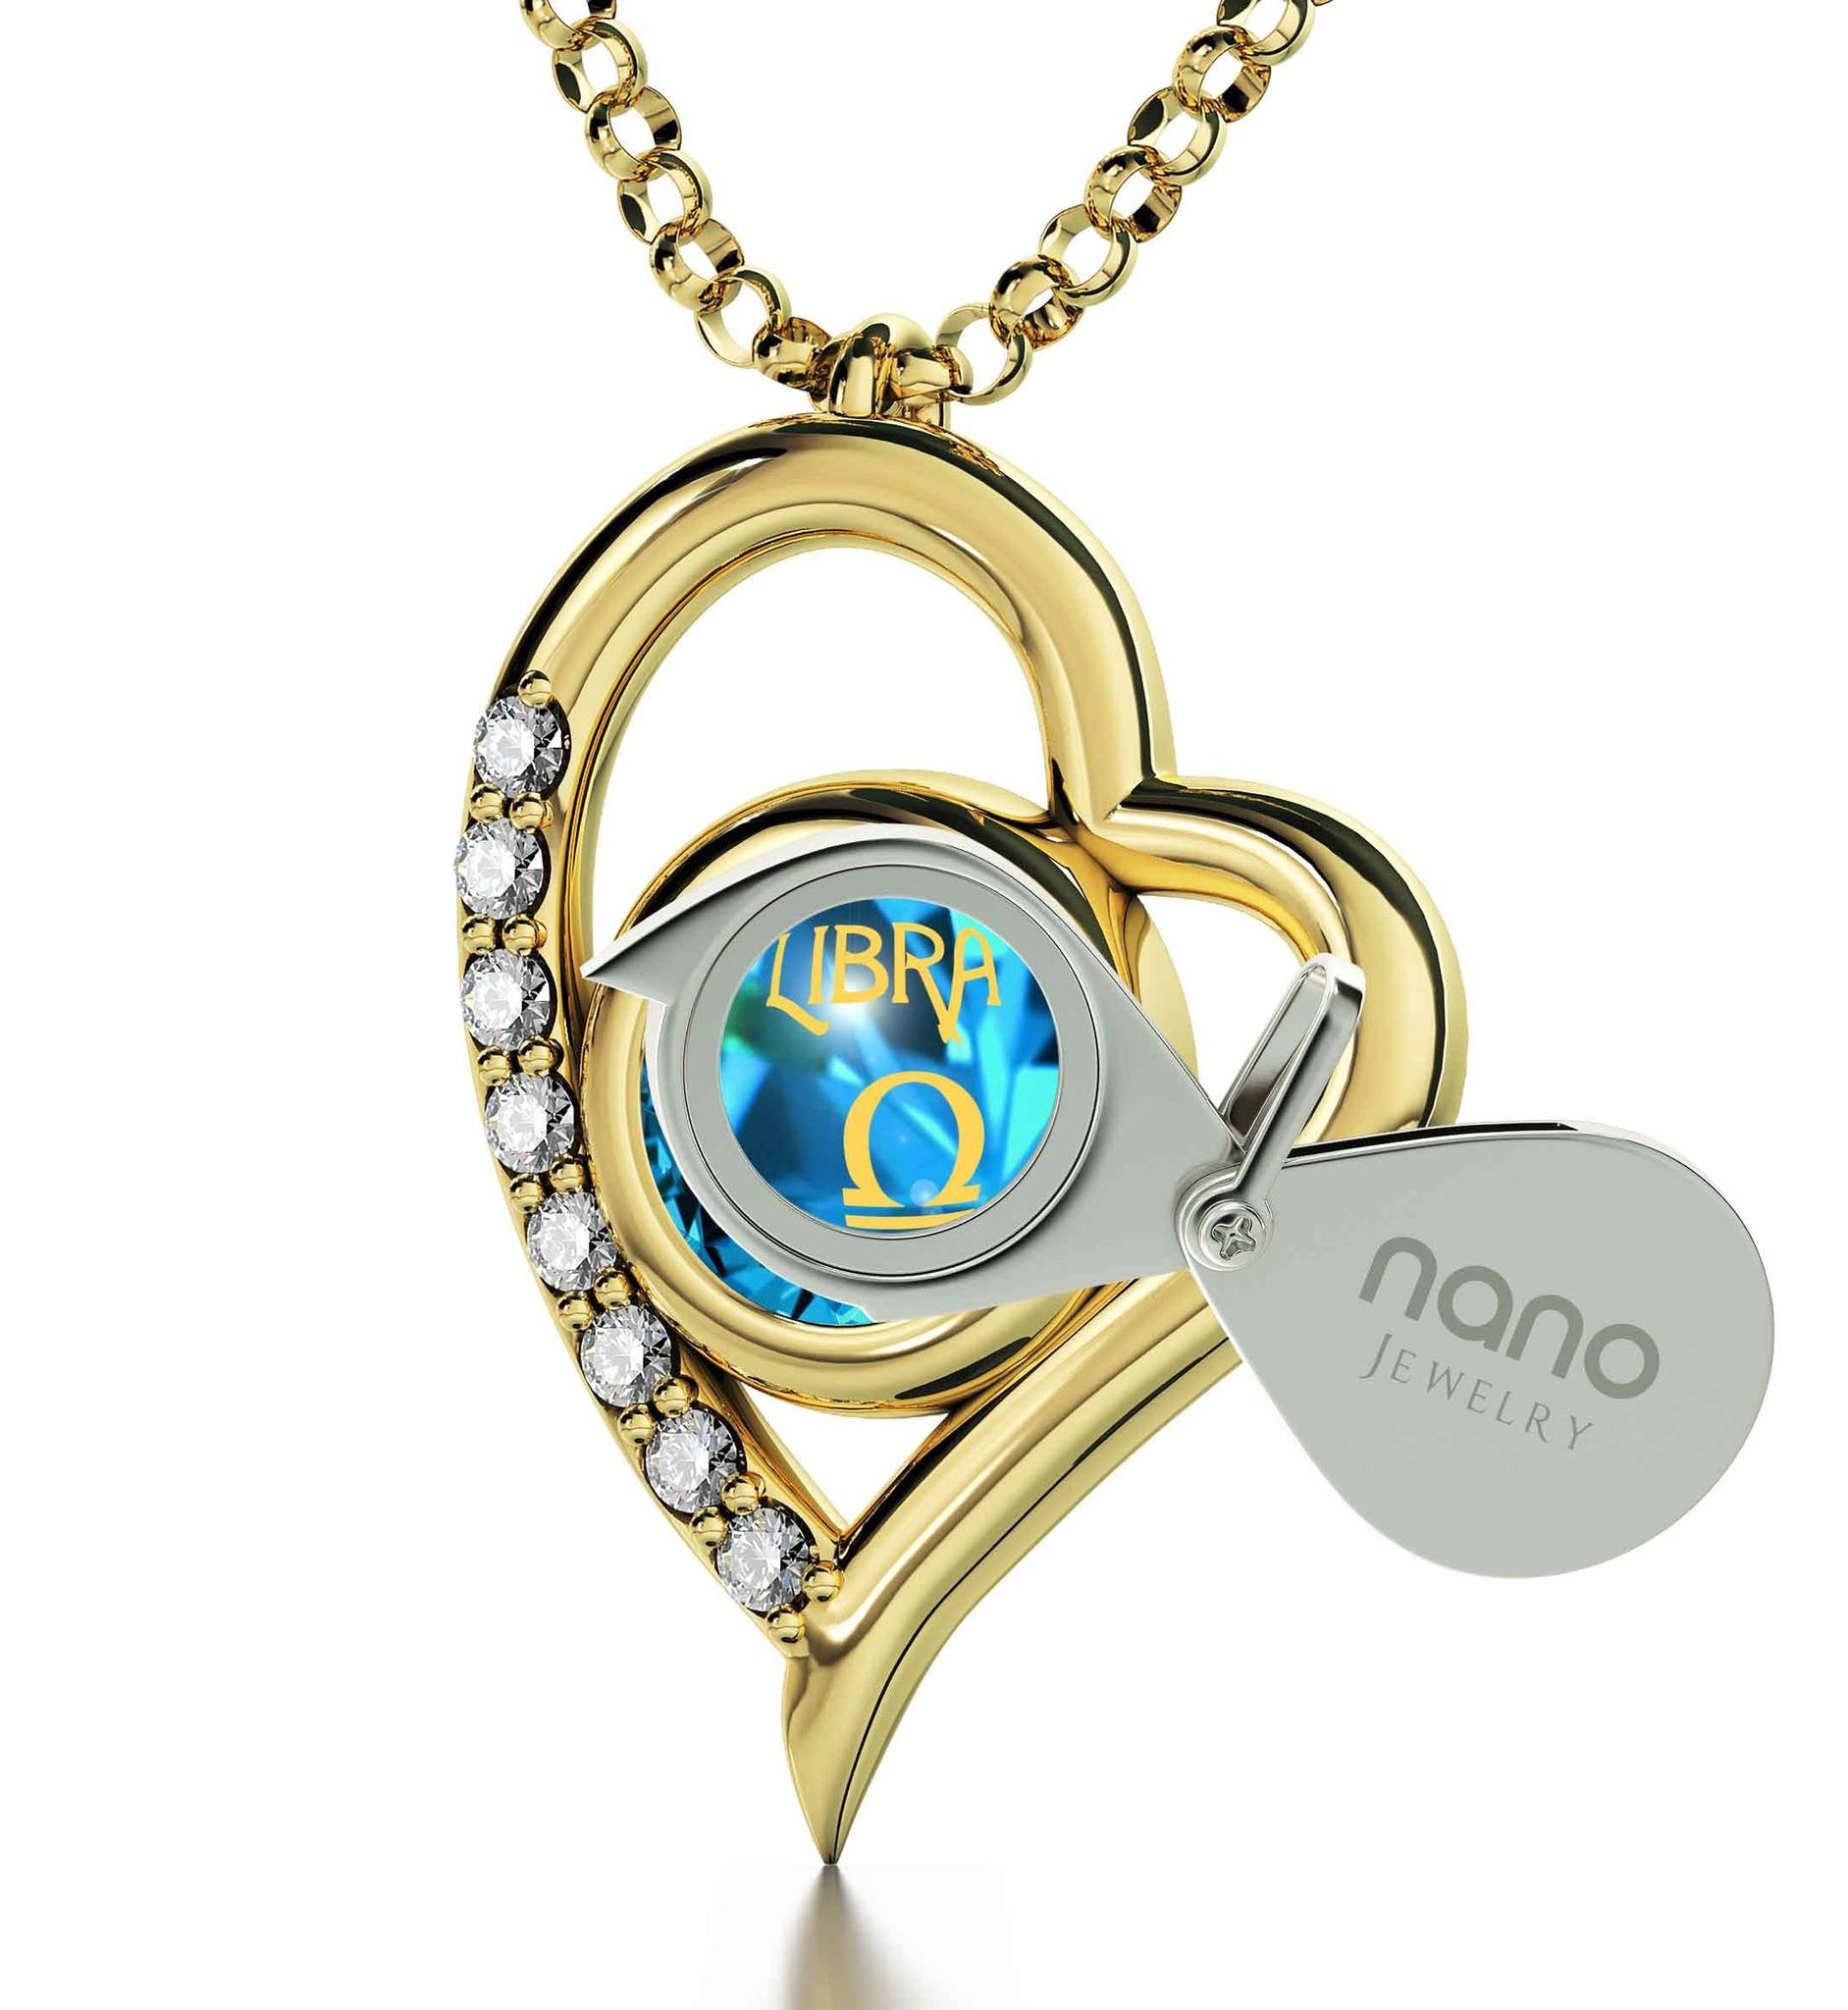 """Libra Sign Engraved in 24k, Blue Stone Necklace, Top Womens Gifts,Cute Christmas Gifts for Your Girlfriend,Nano Jewelry"""